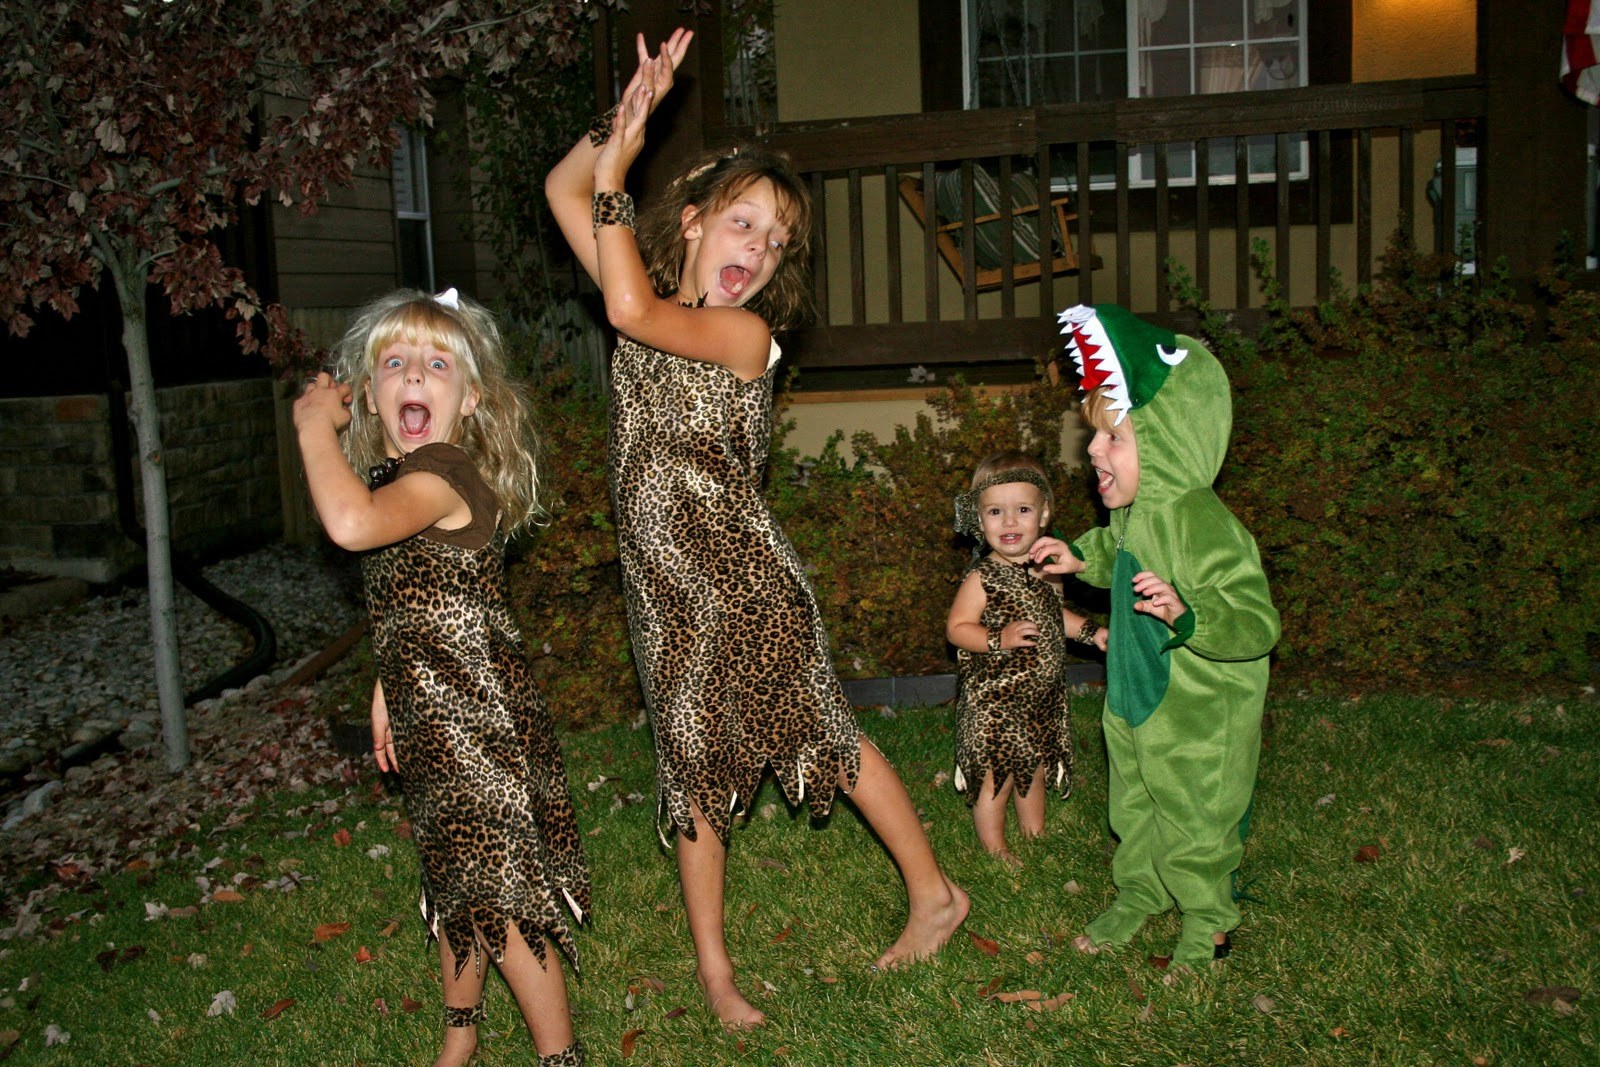 Caveman Outfit Ideas : Top ideas for teen fancy dress costumes smiffy s